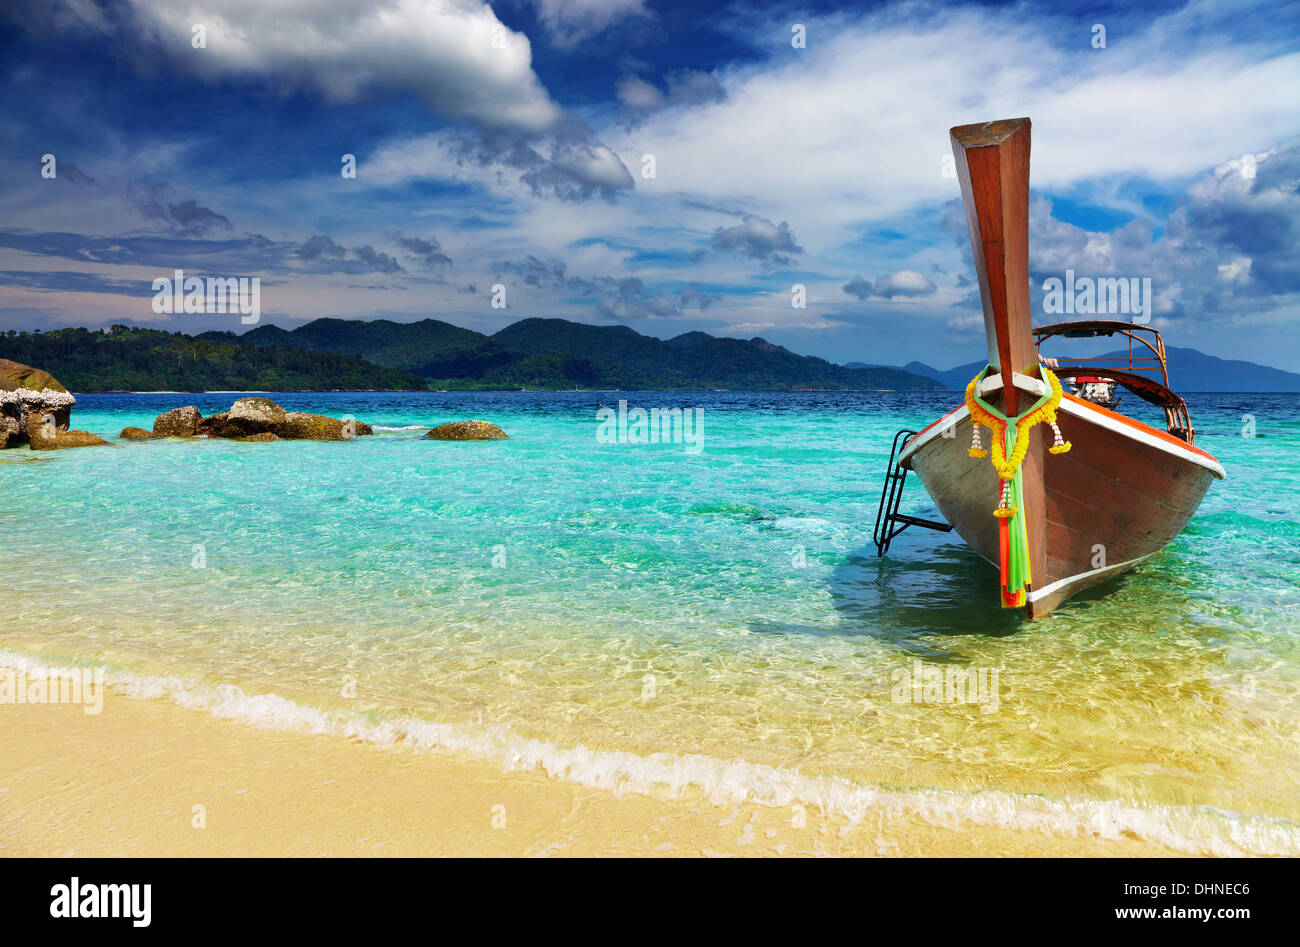 Long tail boat, Tropical beach, Andaman Sea, Thailand - Stock Image